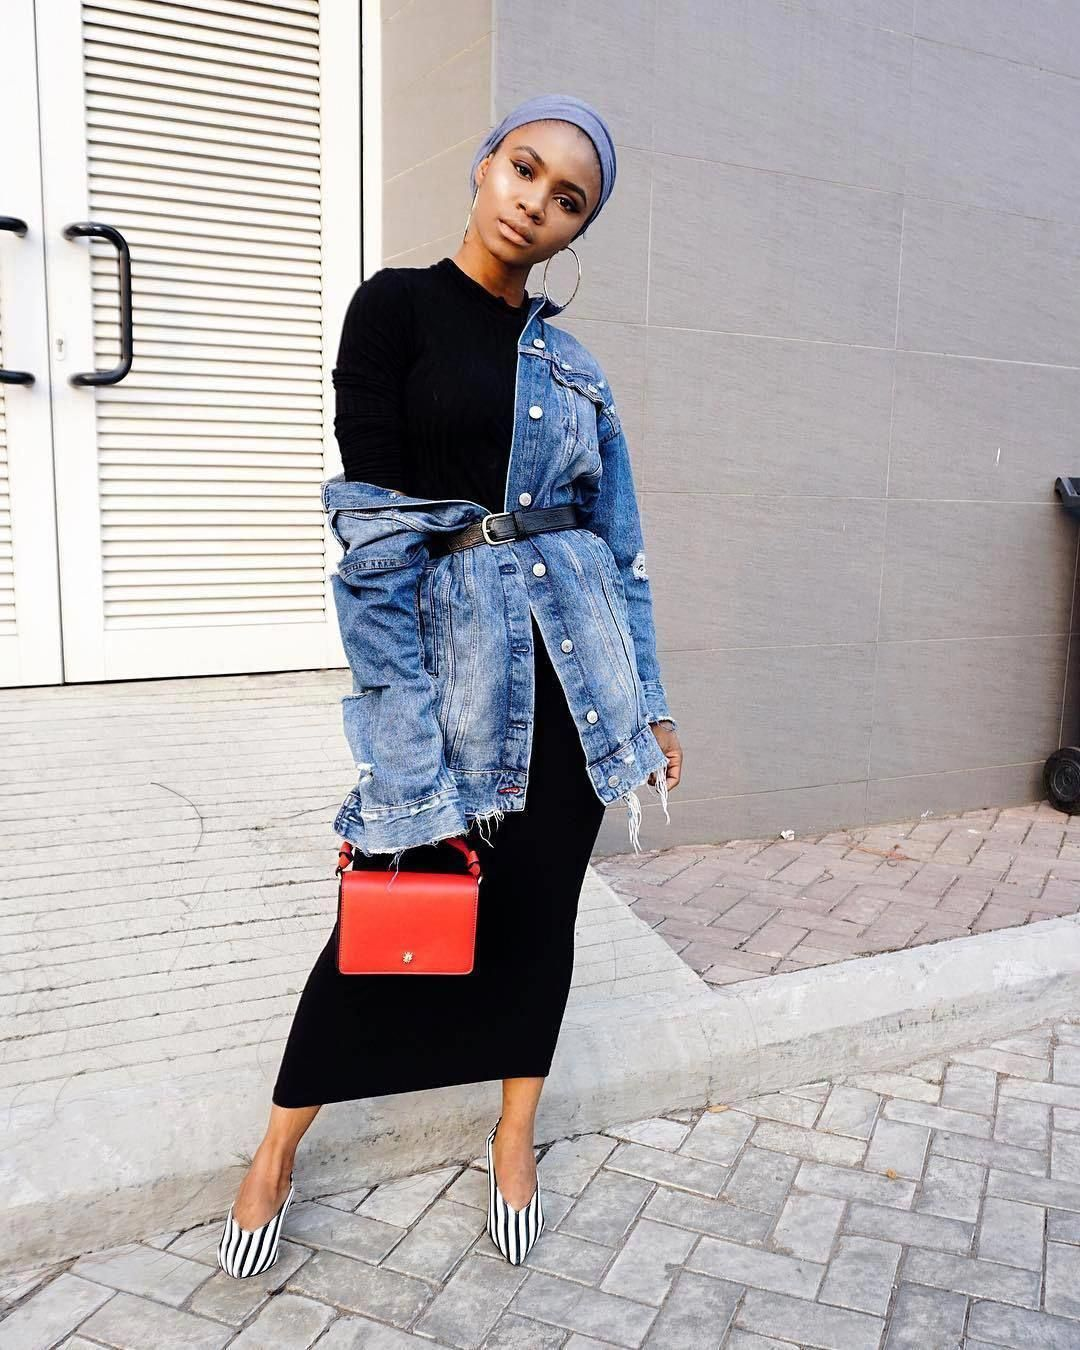 chic street style inspiration for young women in their 20s and 30s, edgy street style inspiration for women #edgywomensfashion #WomensFashionEdgy